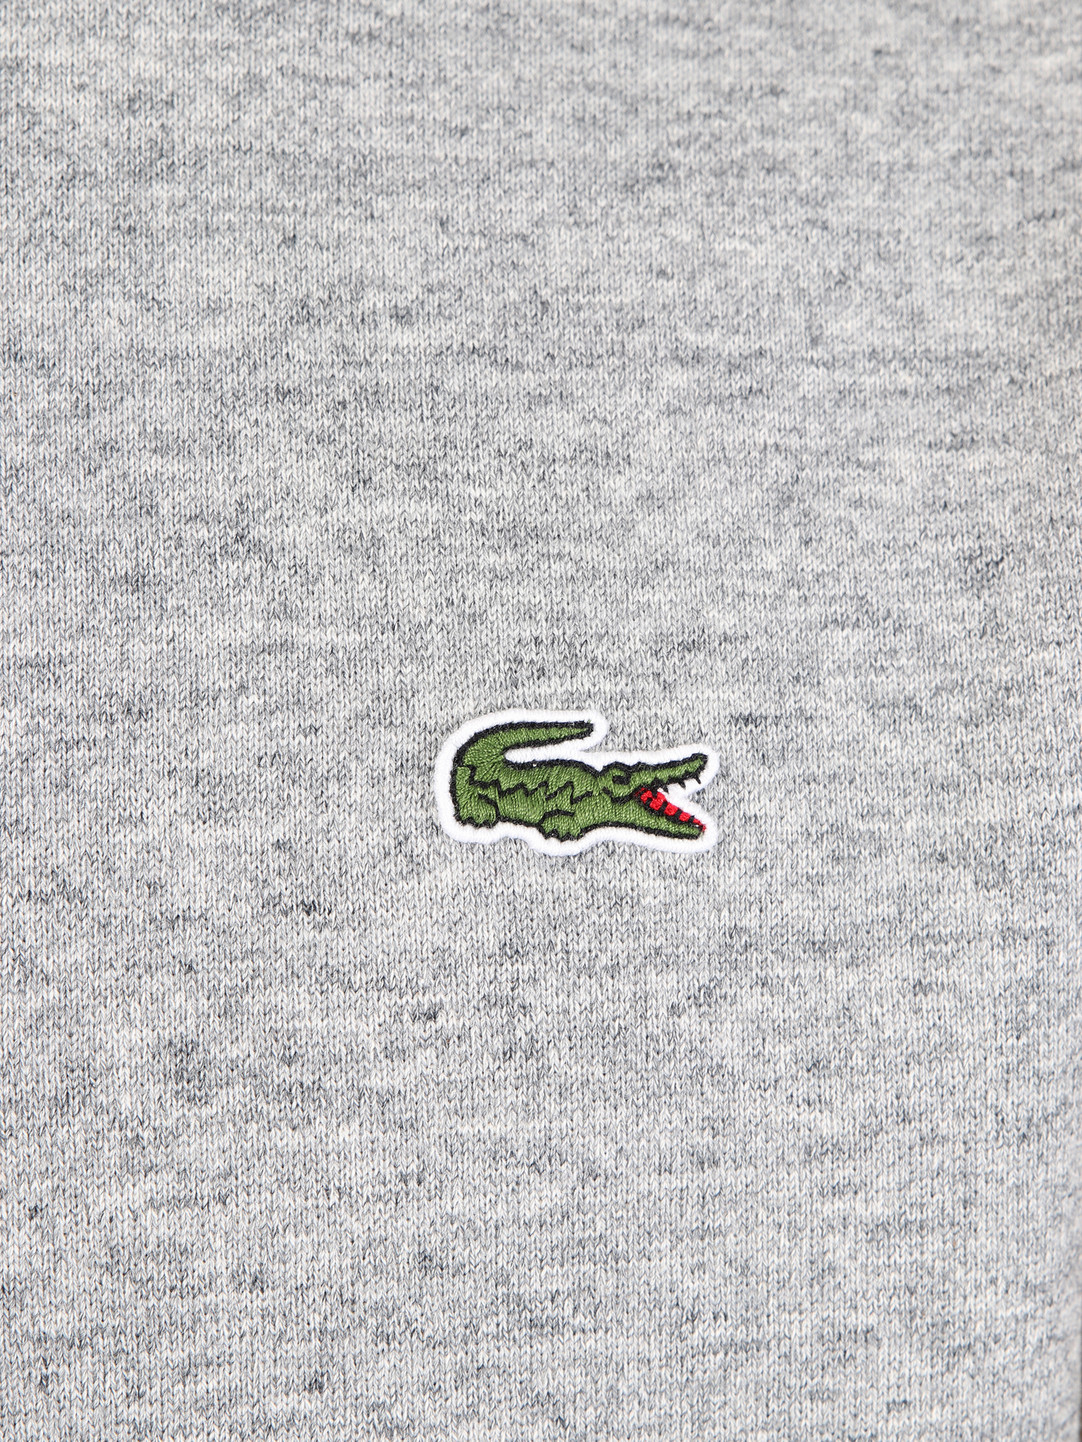 Lacoste Lacoste 1HS1 Sweatshirt 08A Arbas Chine Viennois-Call Sh9075-83